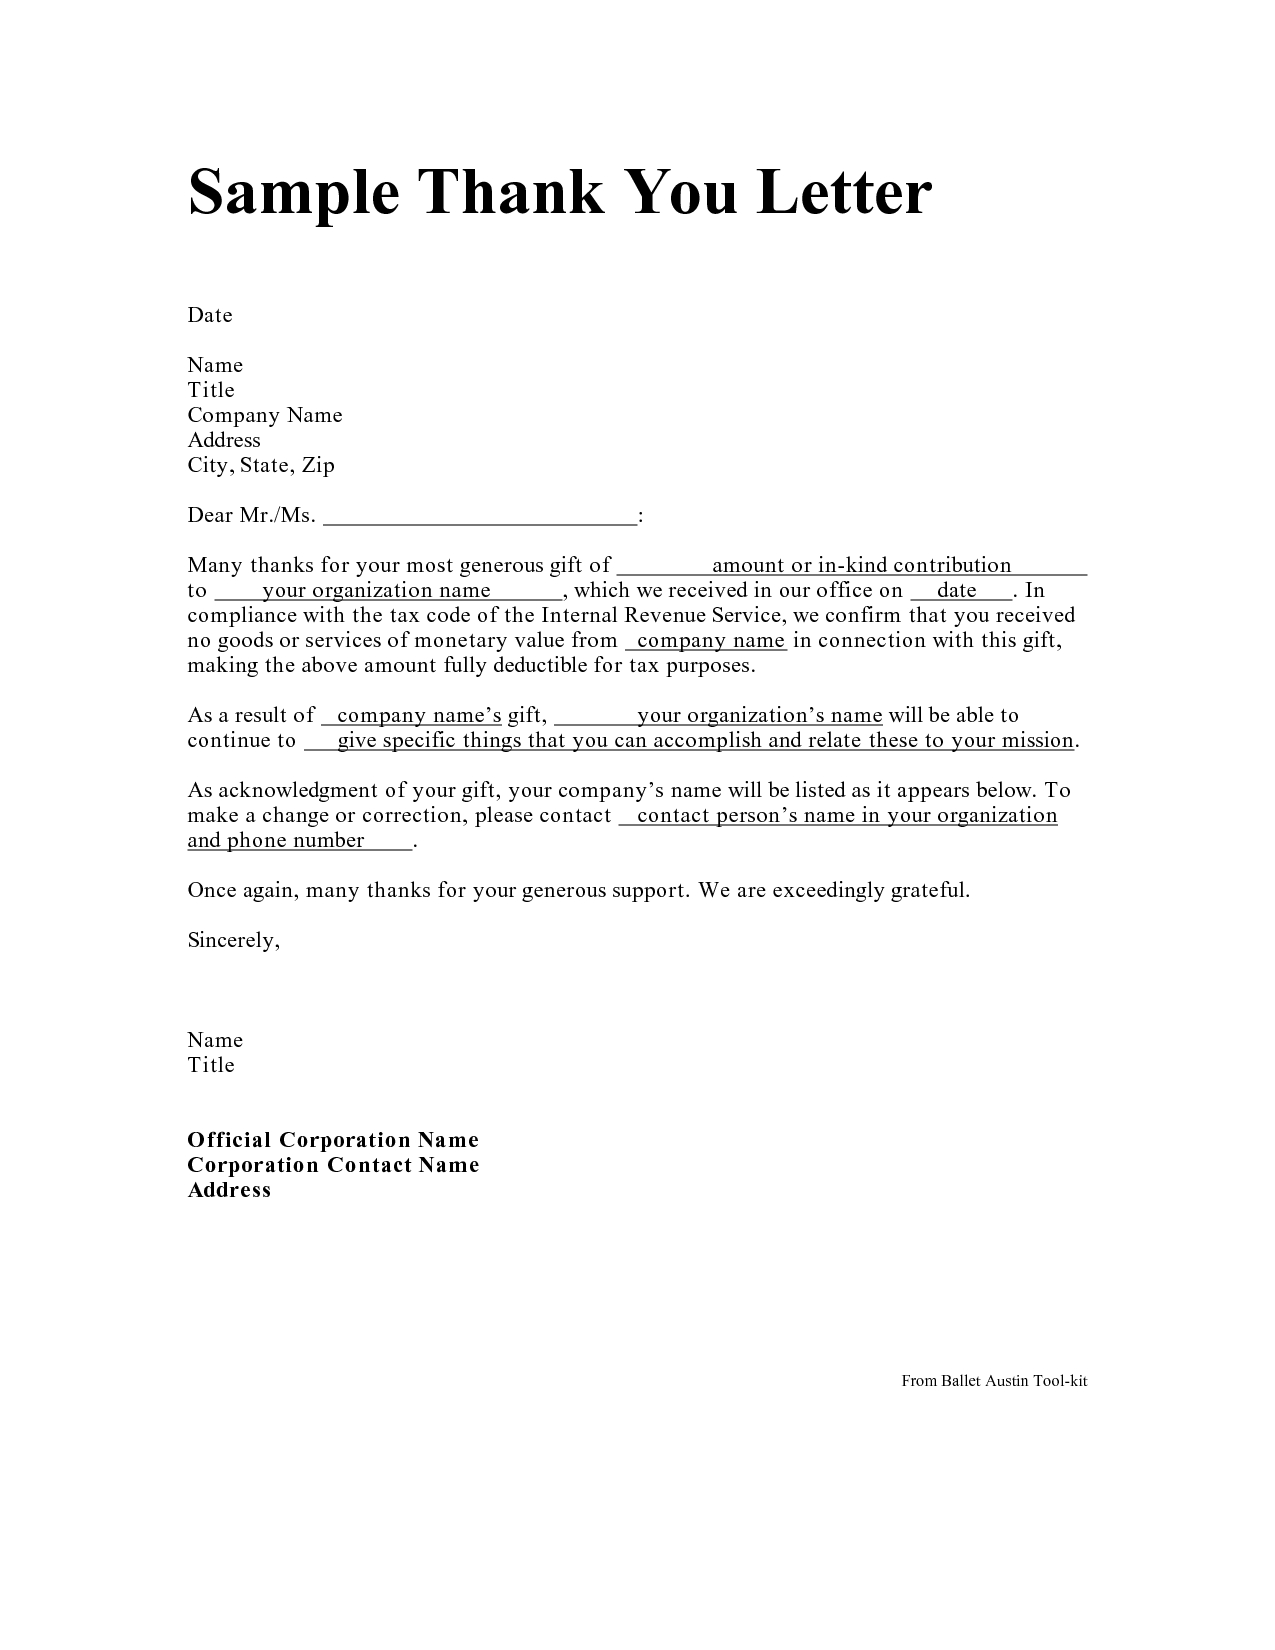 Donor Letter Template - Personal Thank You Letter Personal Thank You Letter Samples